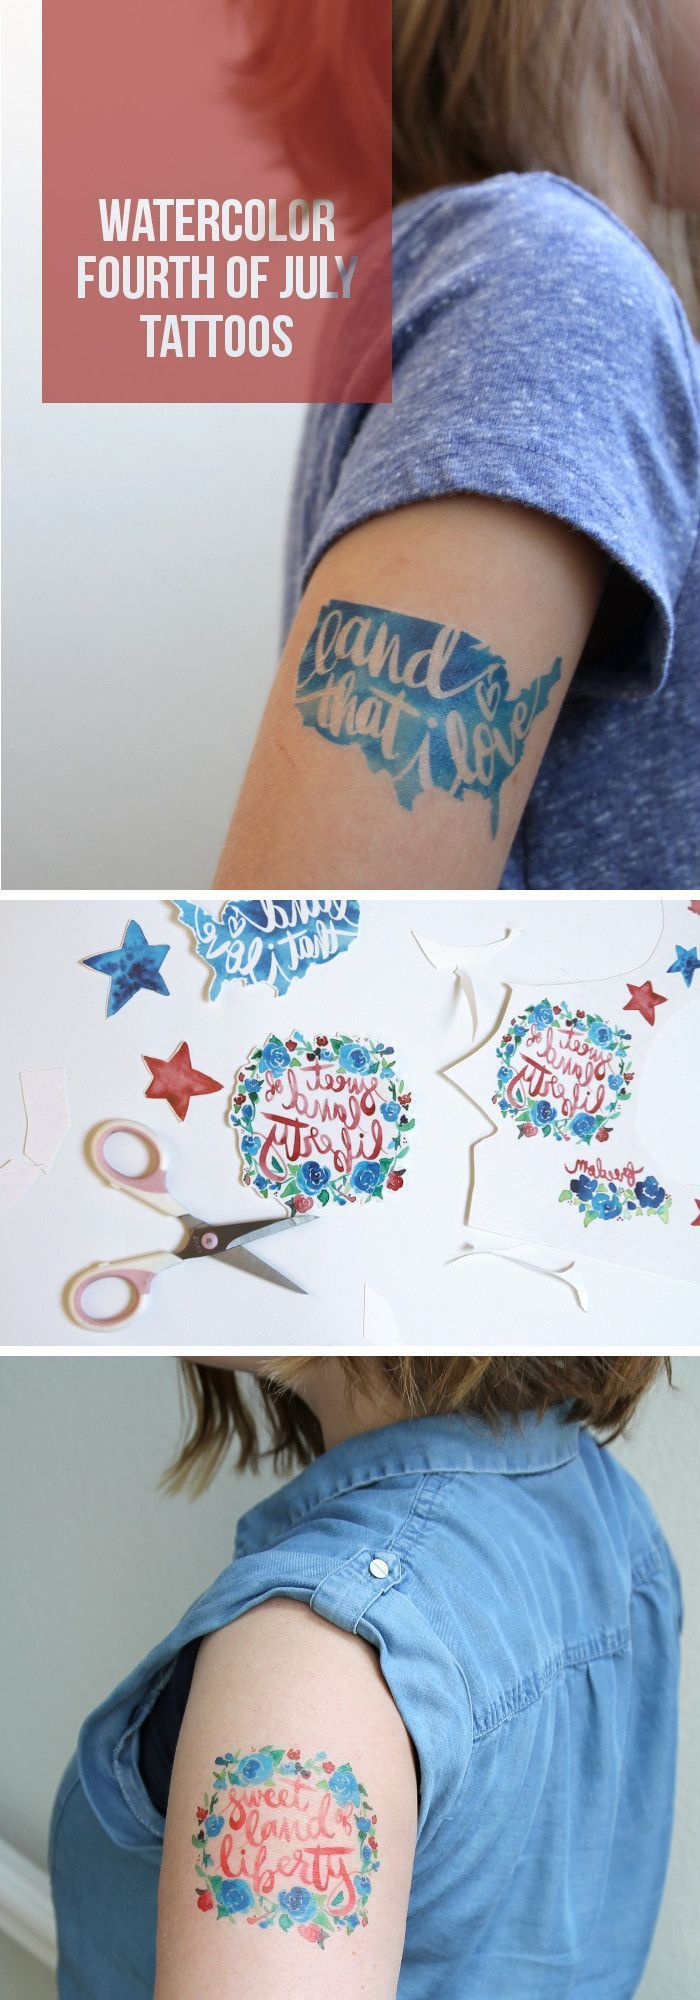 Make your own temporary tattoos for the fourth of july! Pretty watercolor designs. Click through to download the printable file.